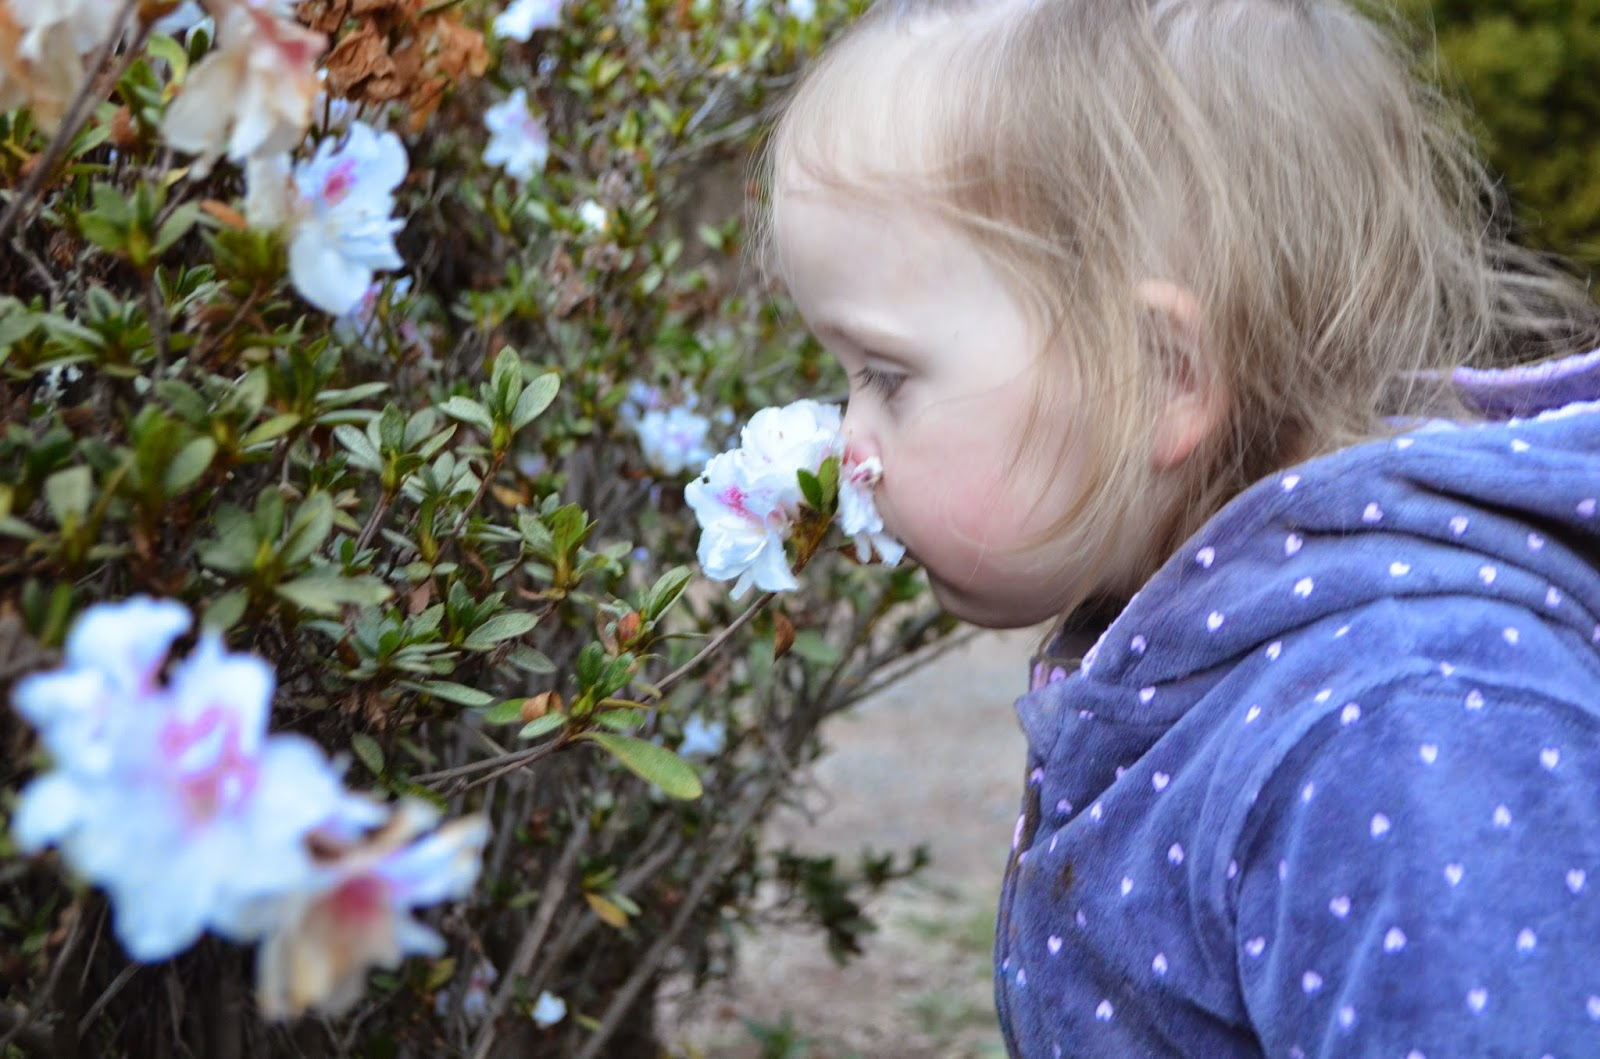 Combat Depression by taking time to smell flowers